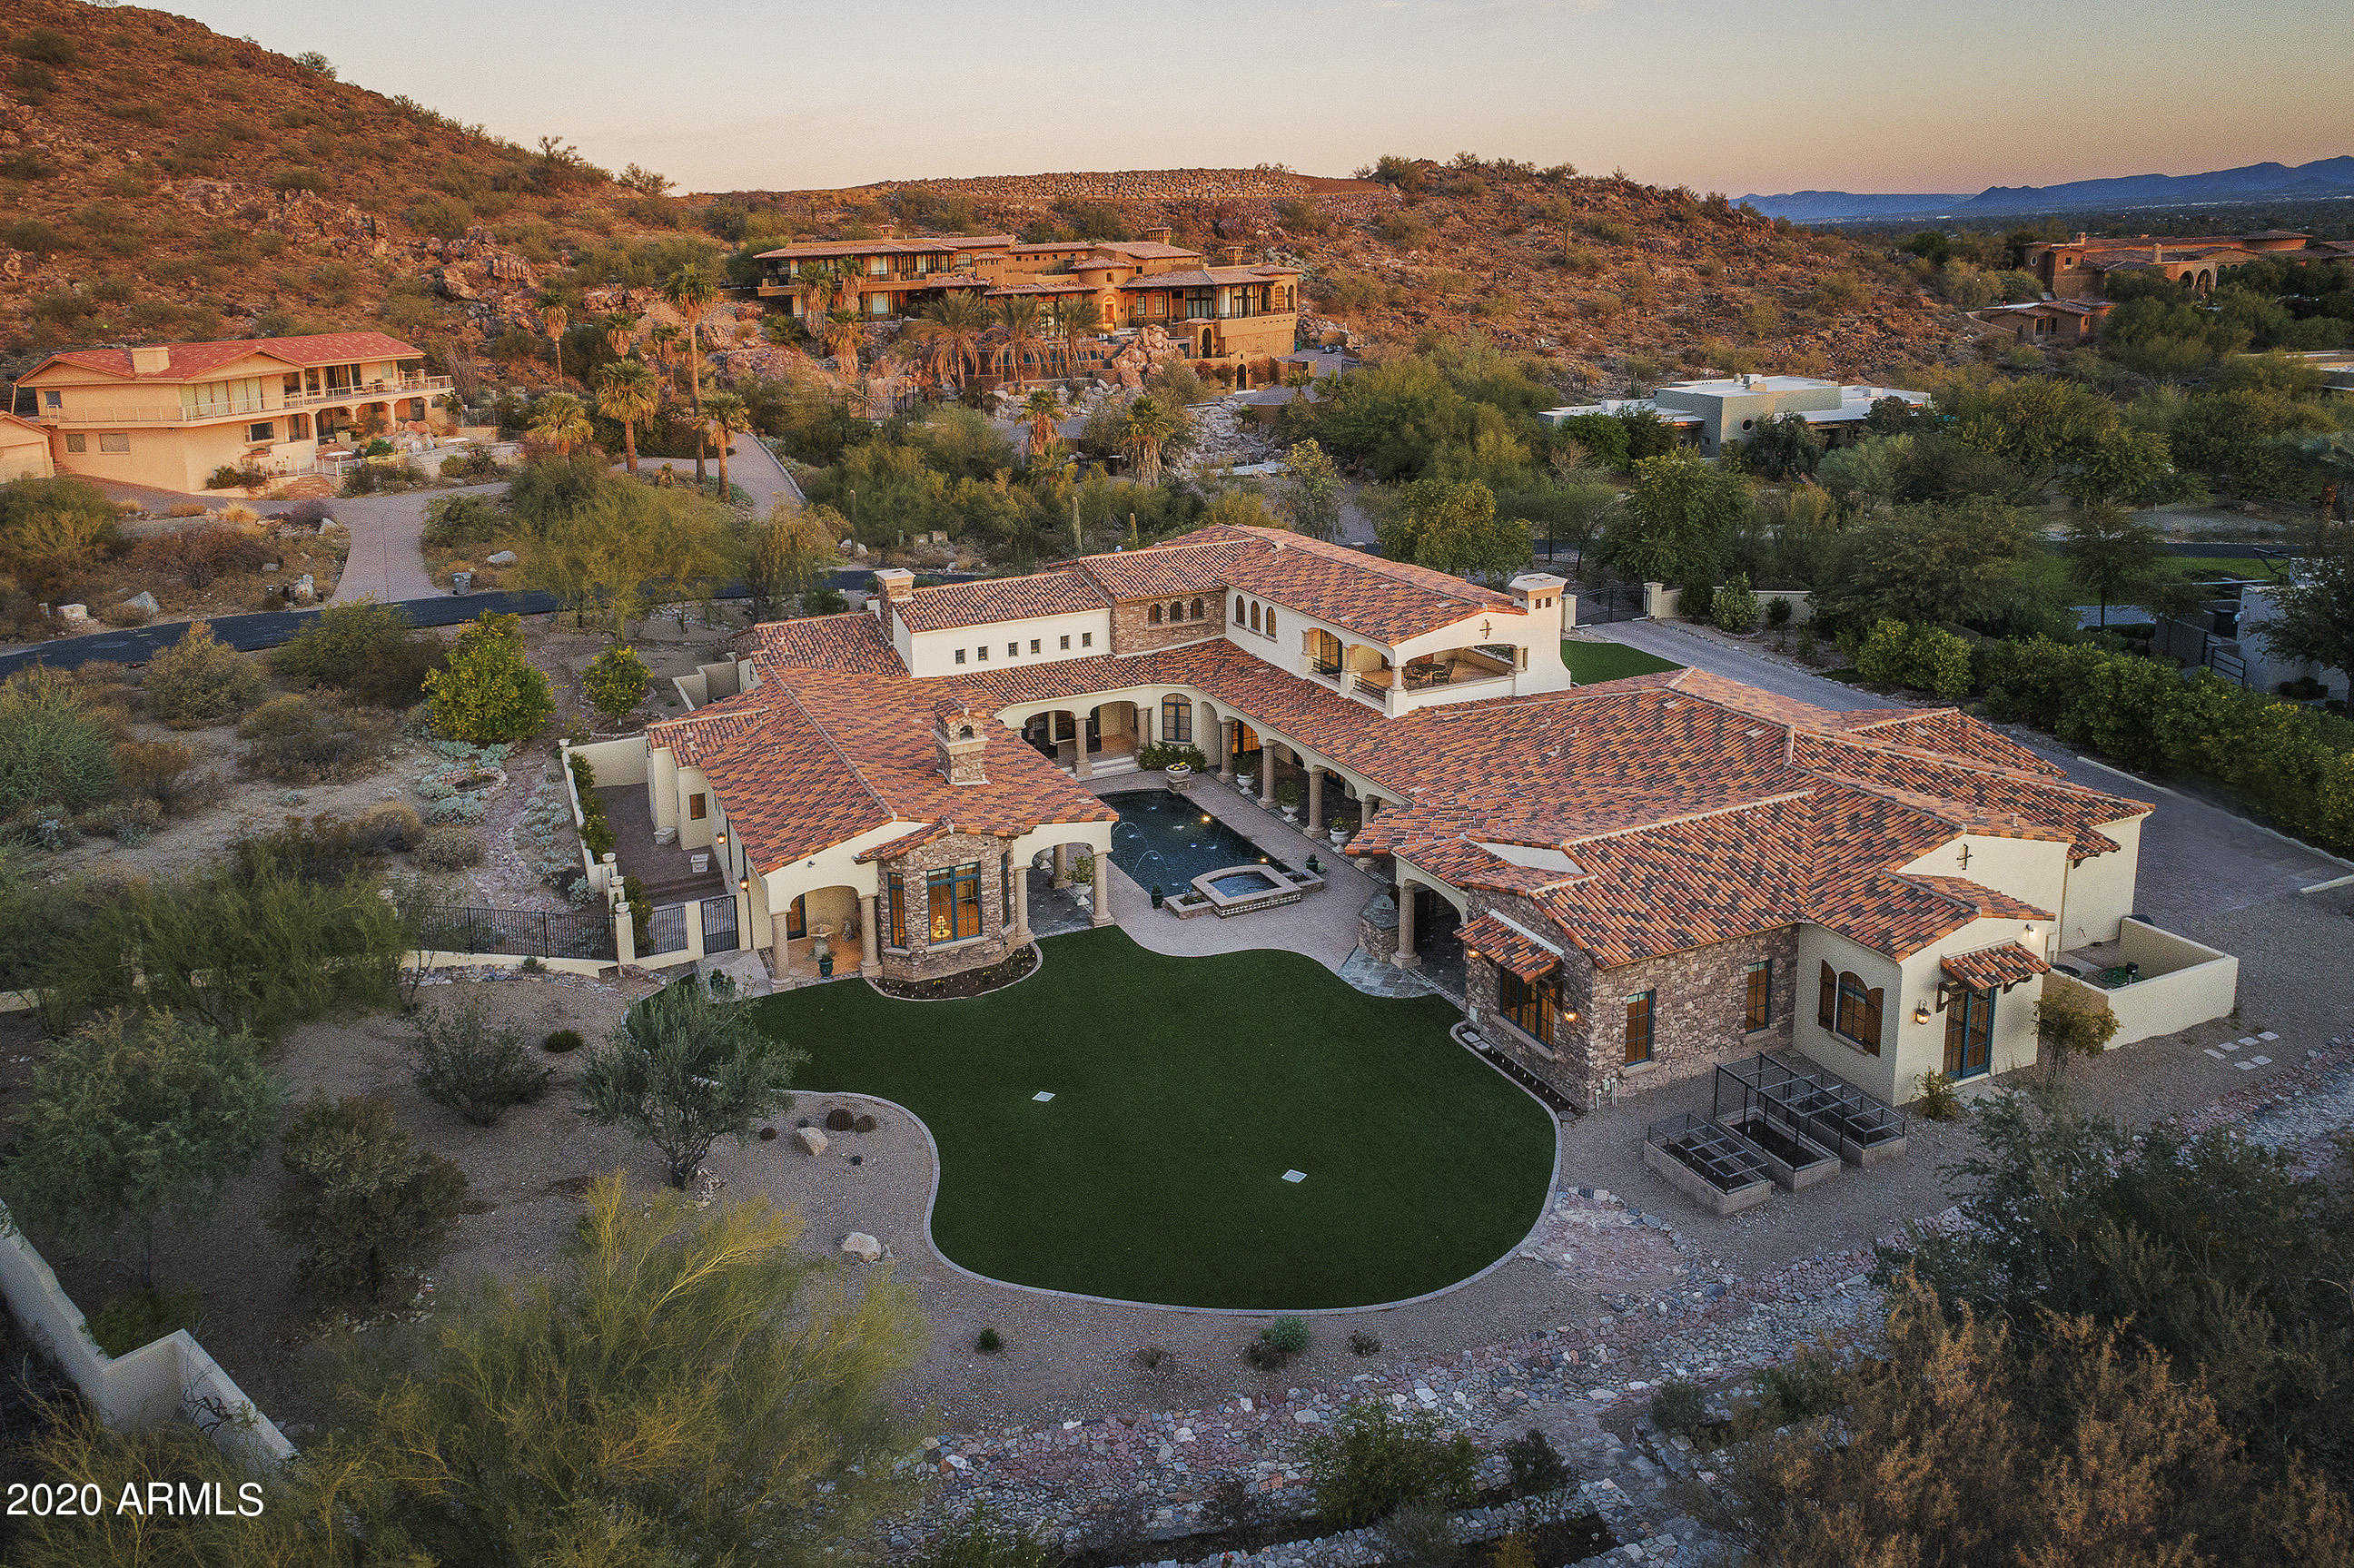 $3,700,000 - 6Br/7Ba - Home for Sale in Mummy Mt Park Lots 32-40, 74-91 & Tr A, Paradise Valley